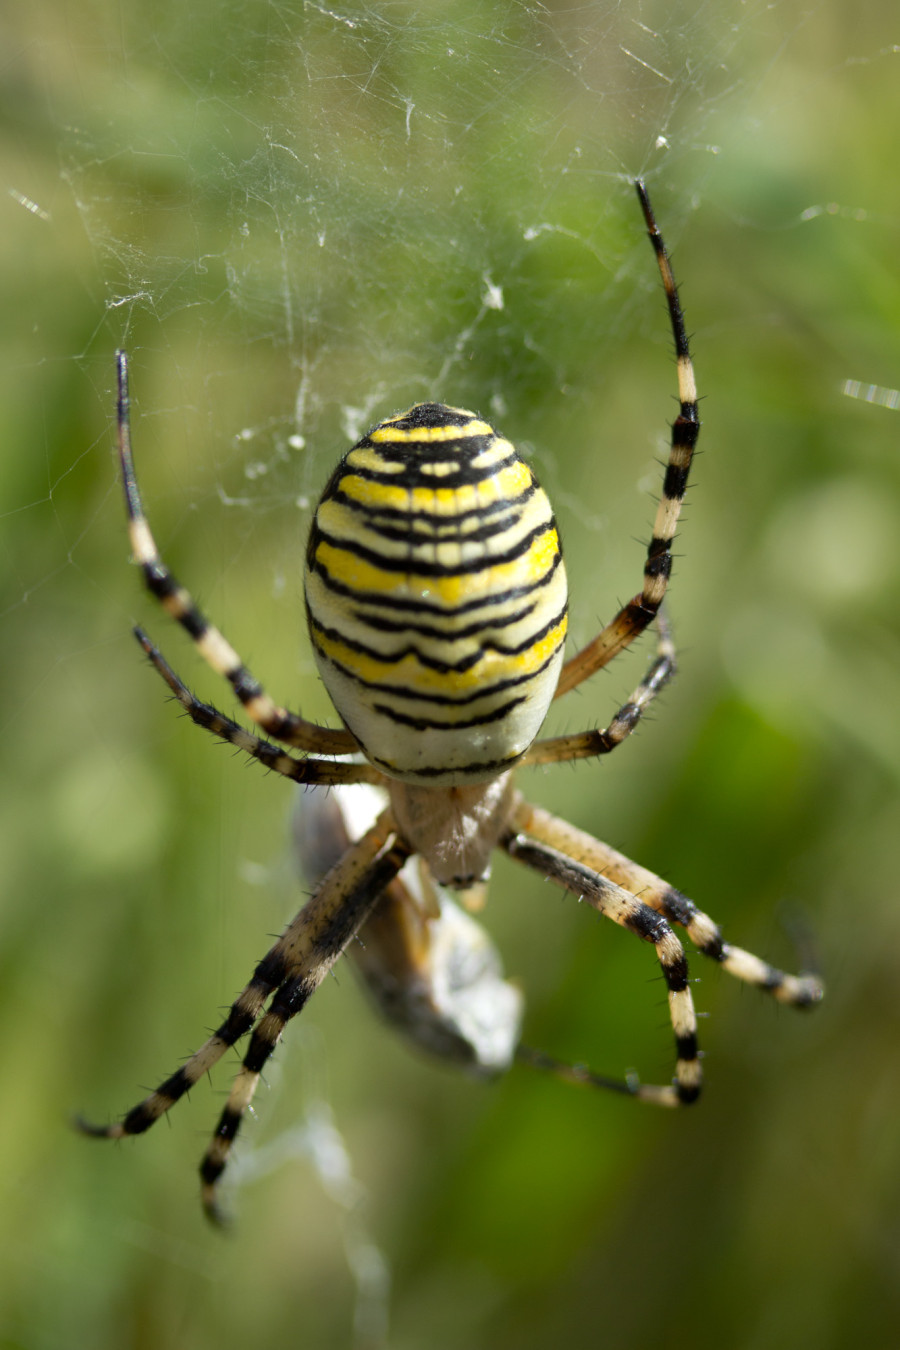 A large wasp spider, whose favourite prey include grasshoppers!